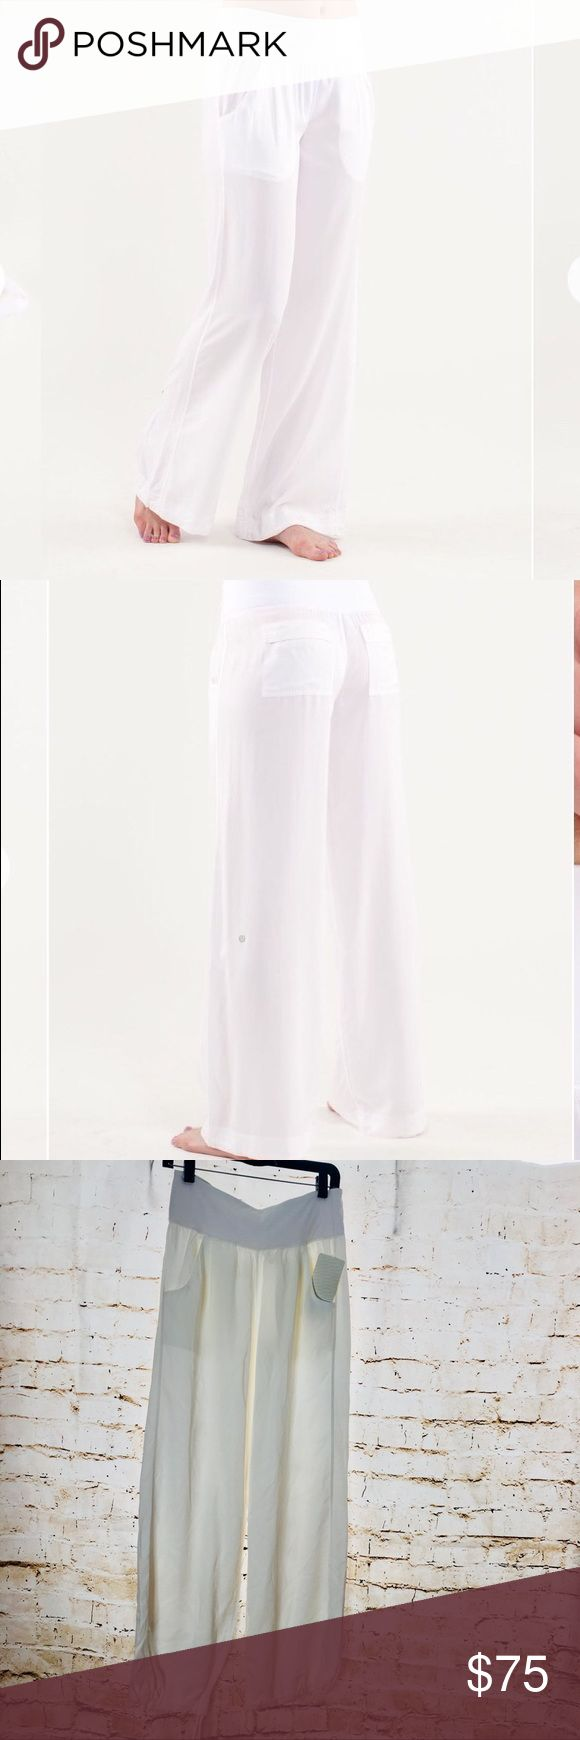 NWT Lululemon Drishti Pant White size 6 NWT Lululemon Drishti Pant White size 6  A drawcord at the hem adjust the length leave the waistband high or fold it over for a lower rise fit designed for greater movement and comfort two front pockets at the hip and two back pockets make it easy for you to store your stuff just say no to chafing with flat seams Tech specs designed for: yoga fabric(s): TENCEL®, luon® properties: moisture wicking, chafe resistant, breathable rise: medium leg fit: wide…